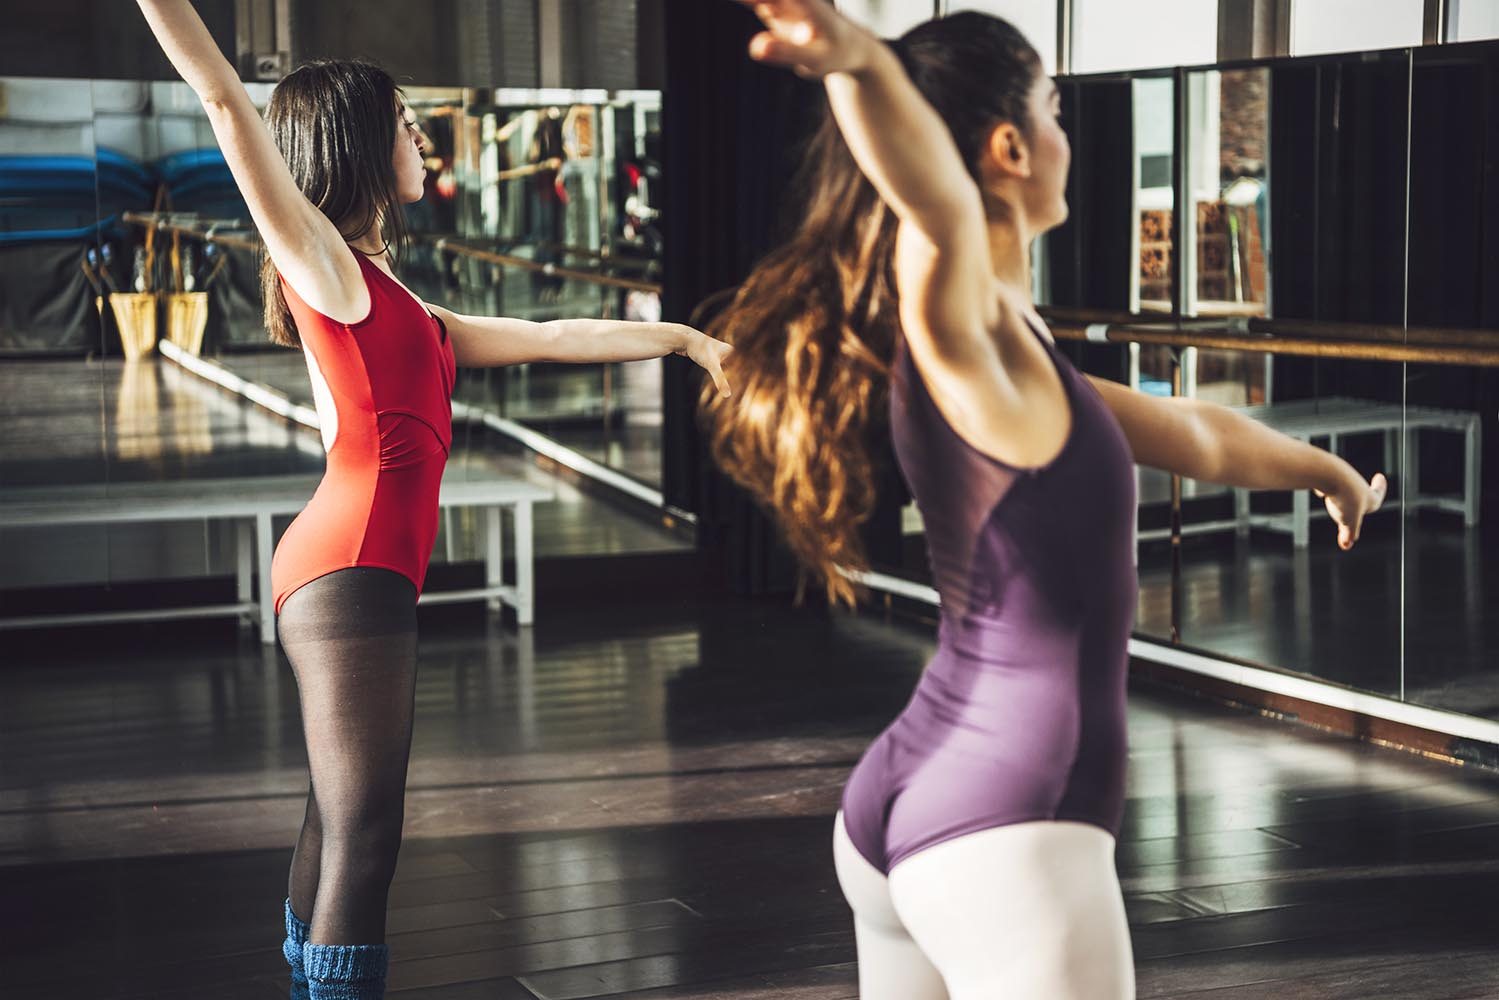 Young ballerinas training together